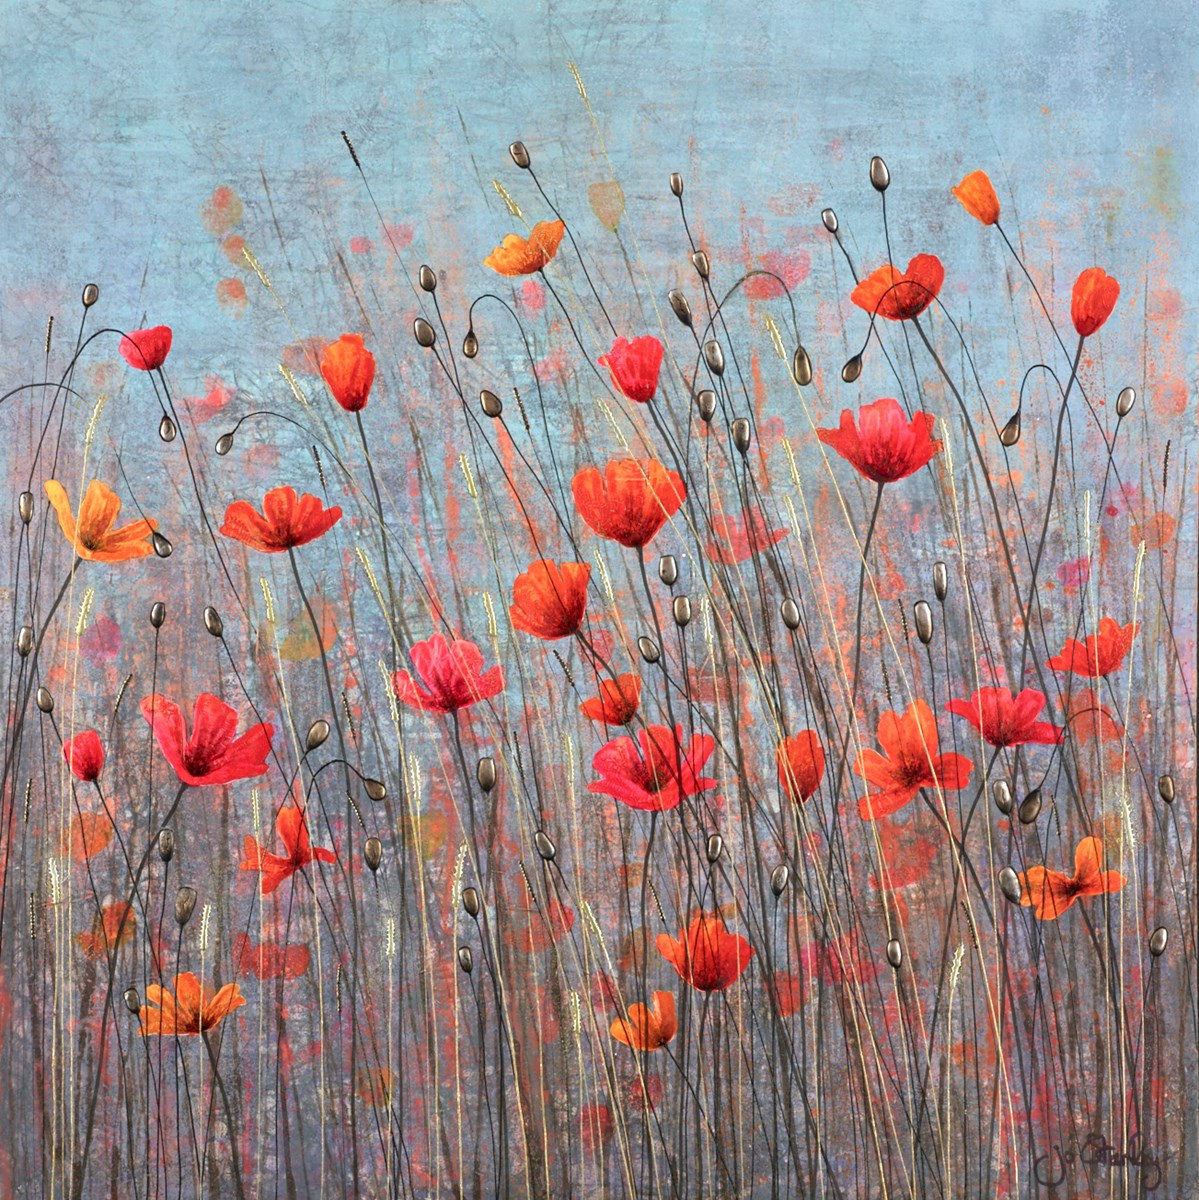 Where the Heart Is by jo starkey -  sized 28x28 inches. Available from Whitewall Galleries